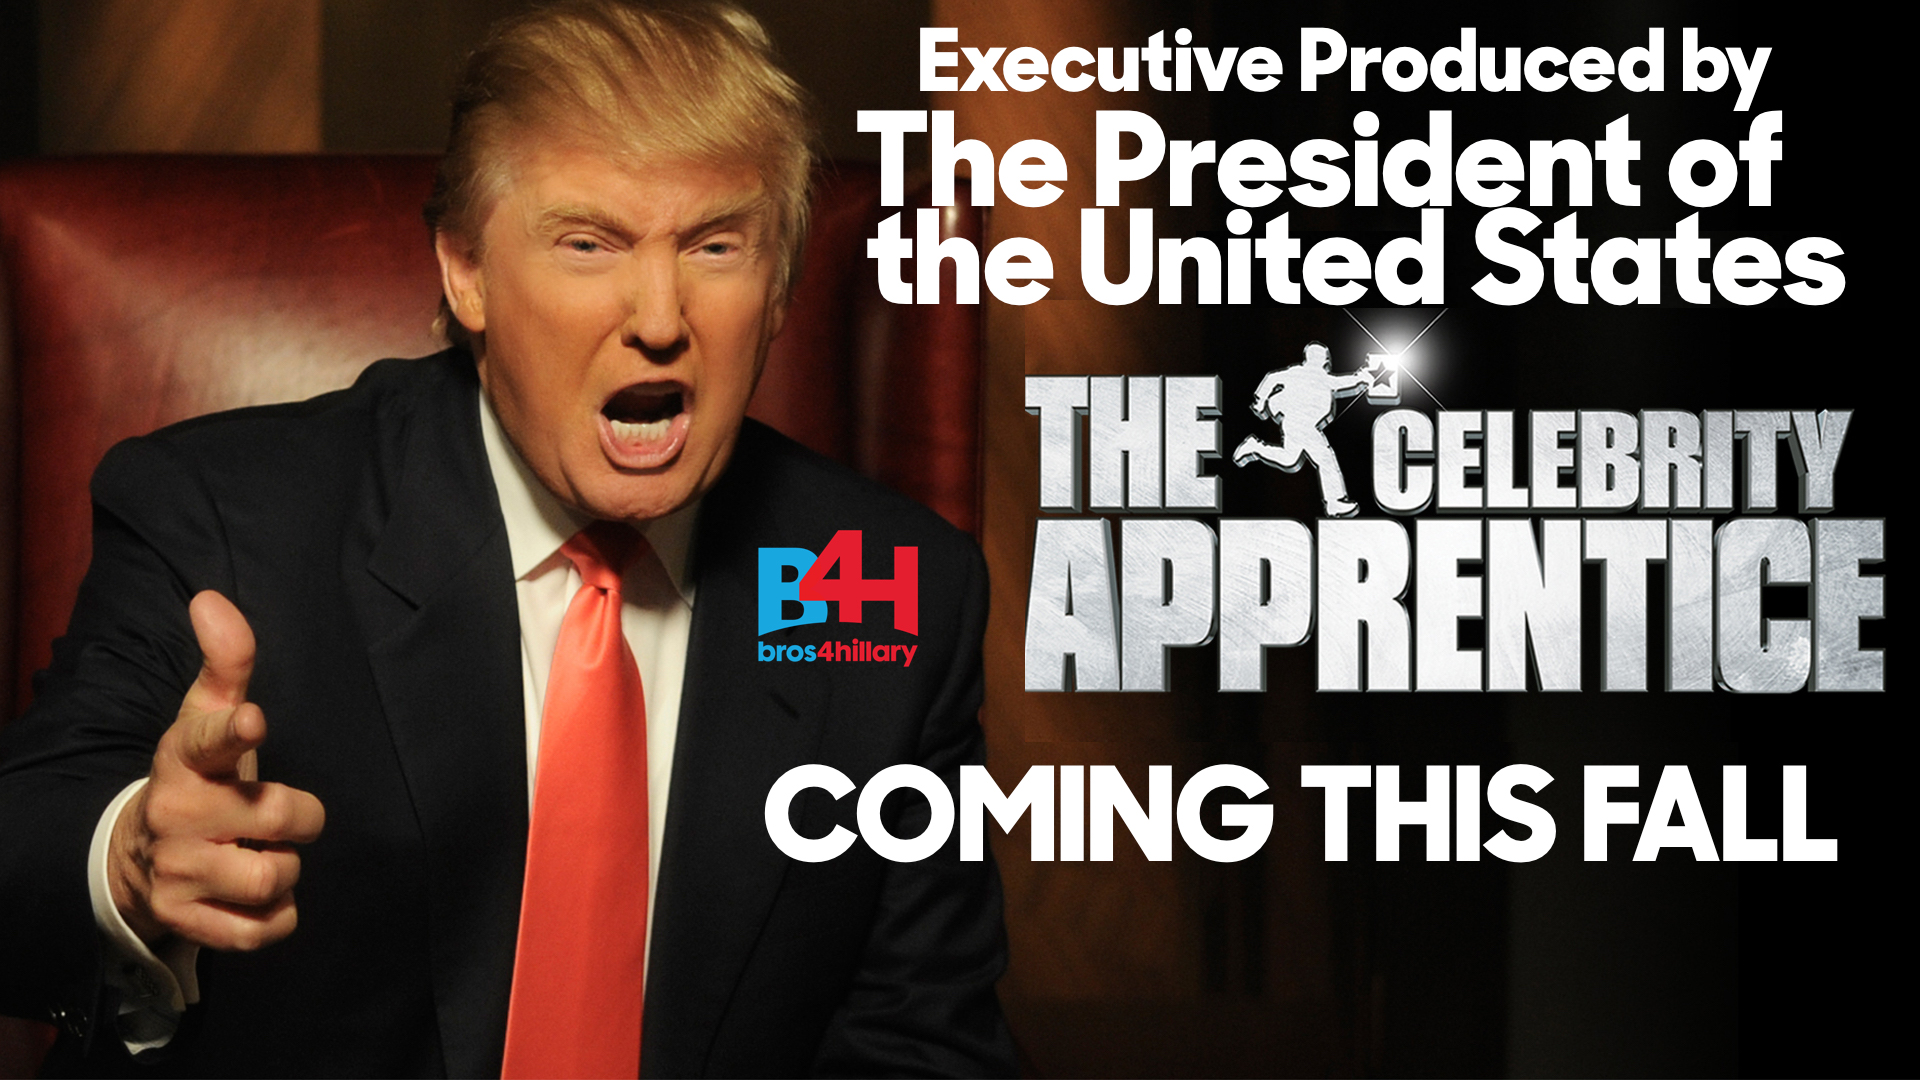 The president will remain Executive Producer of The Apprentice